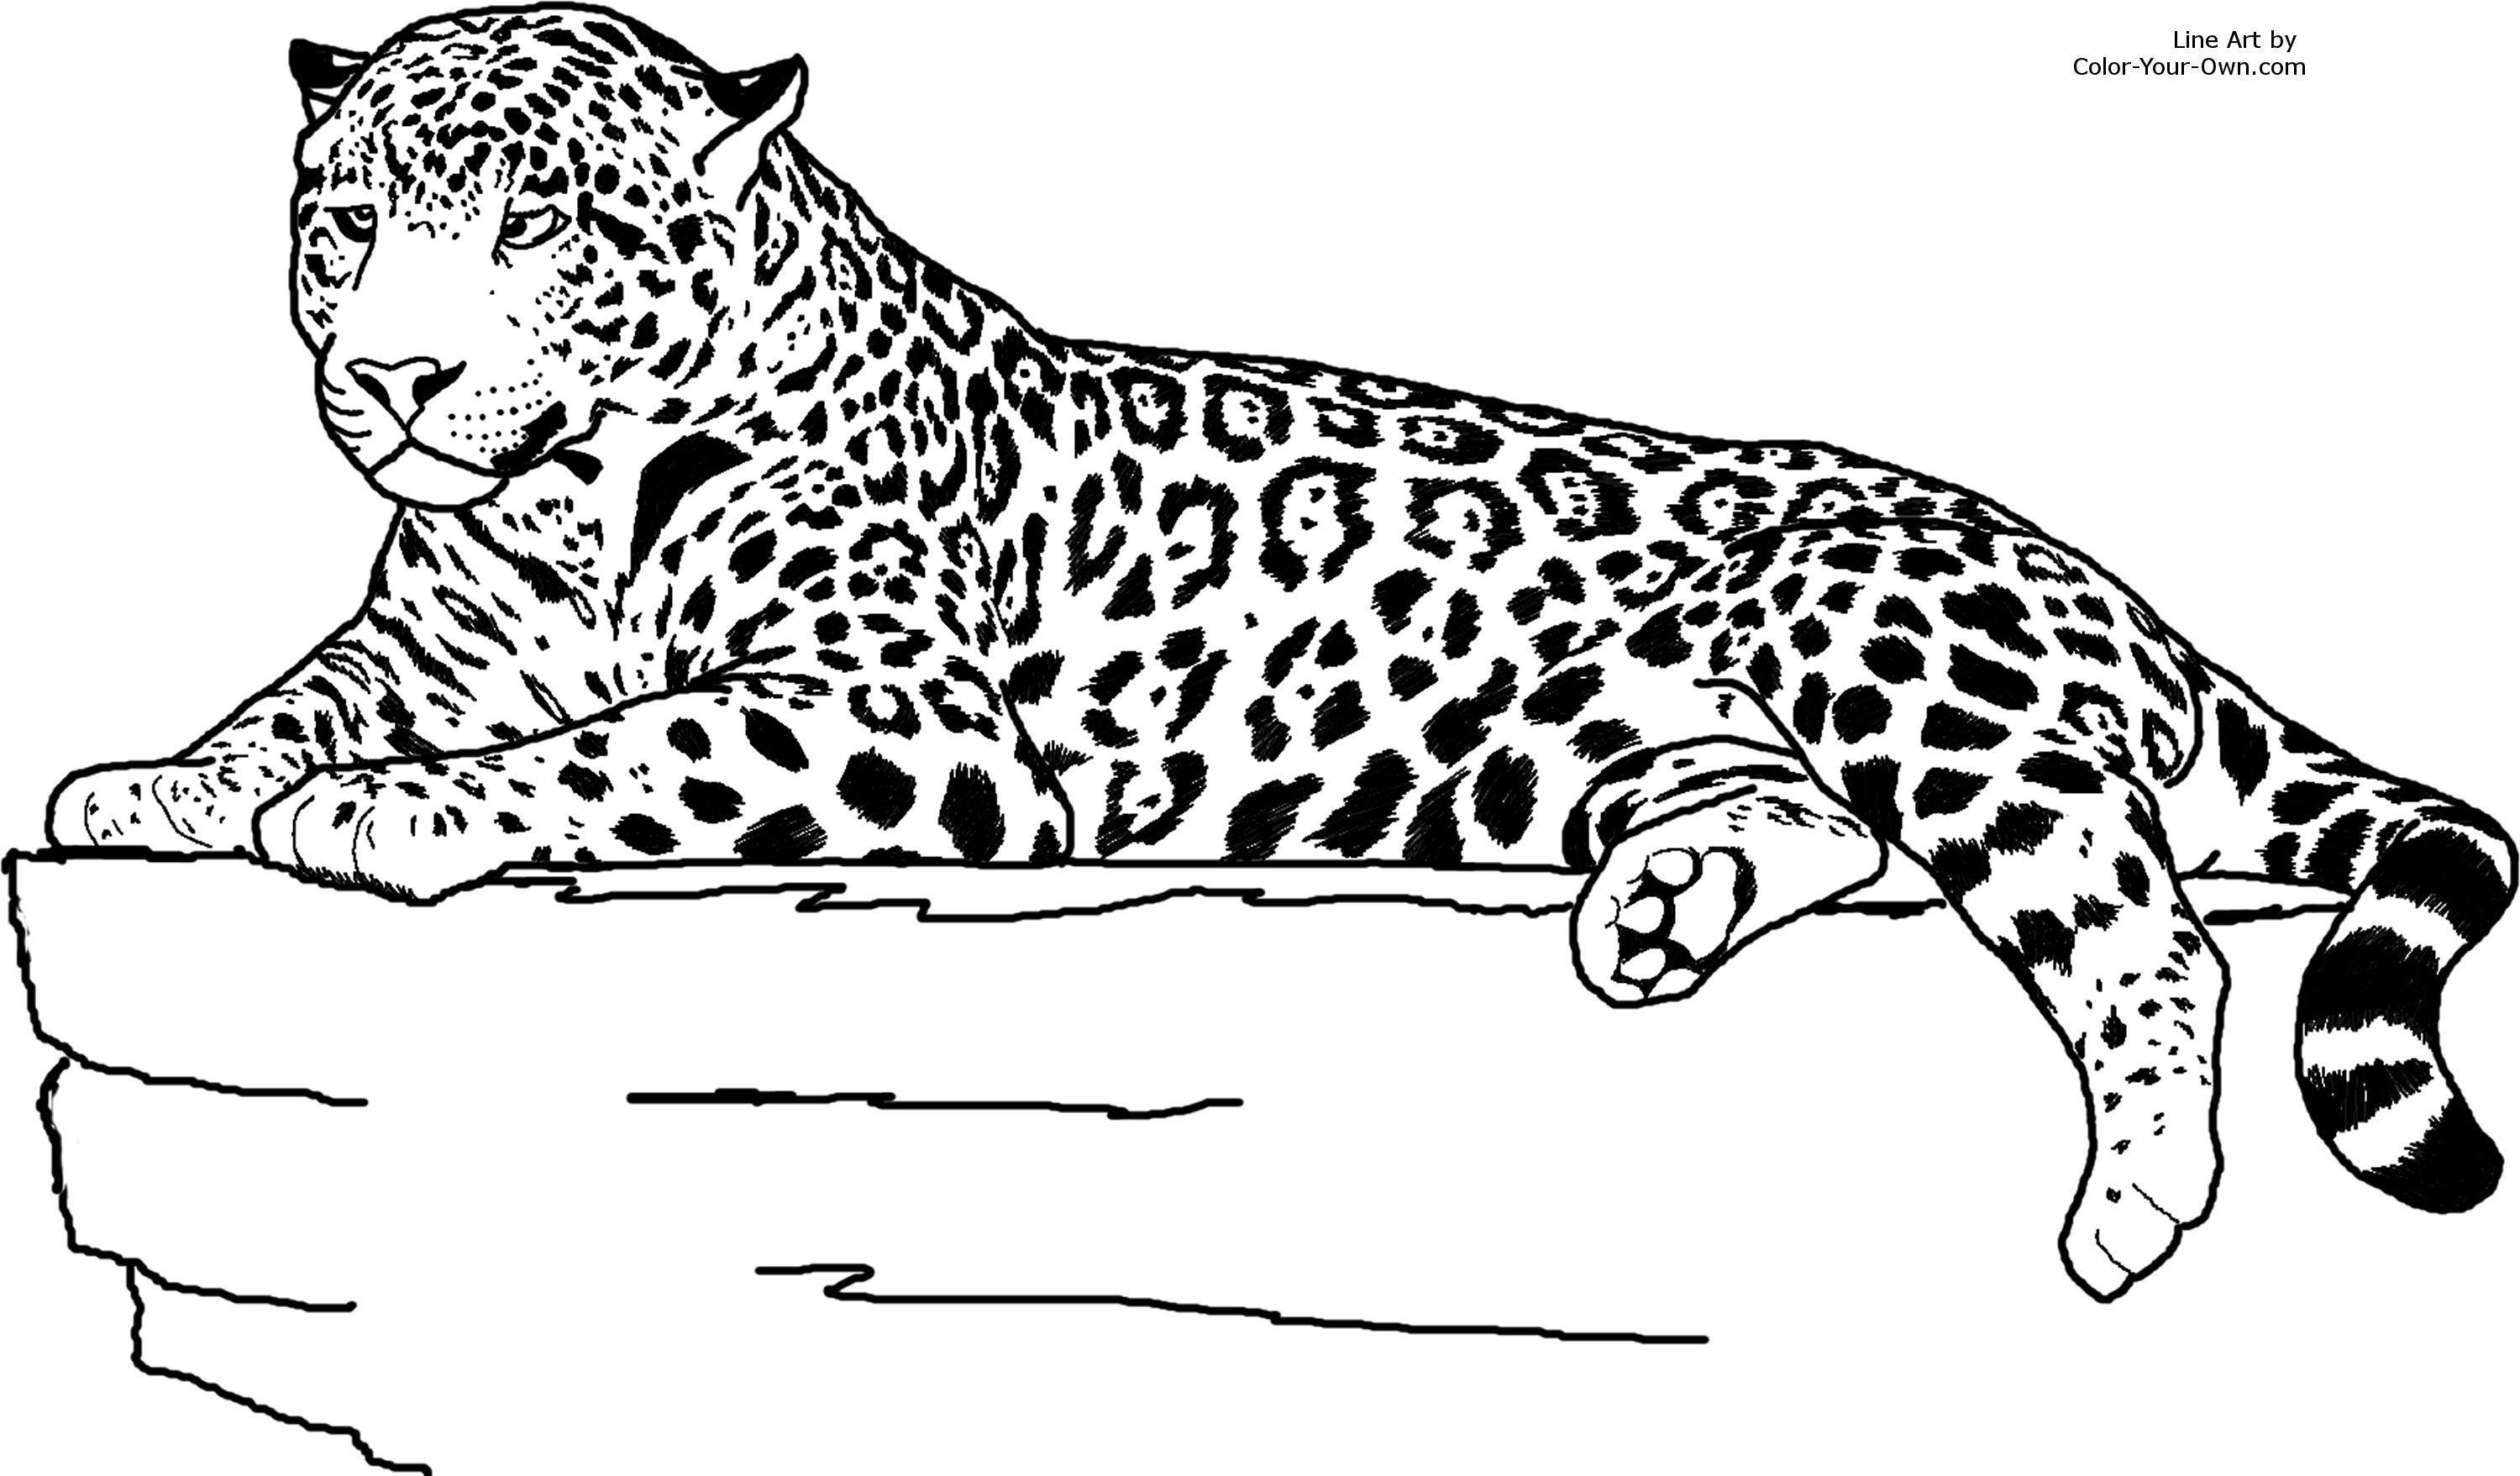 coloring pages jaguars - photo#22